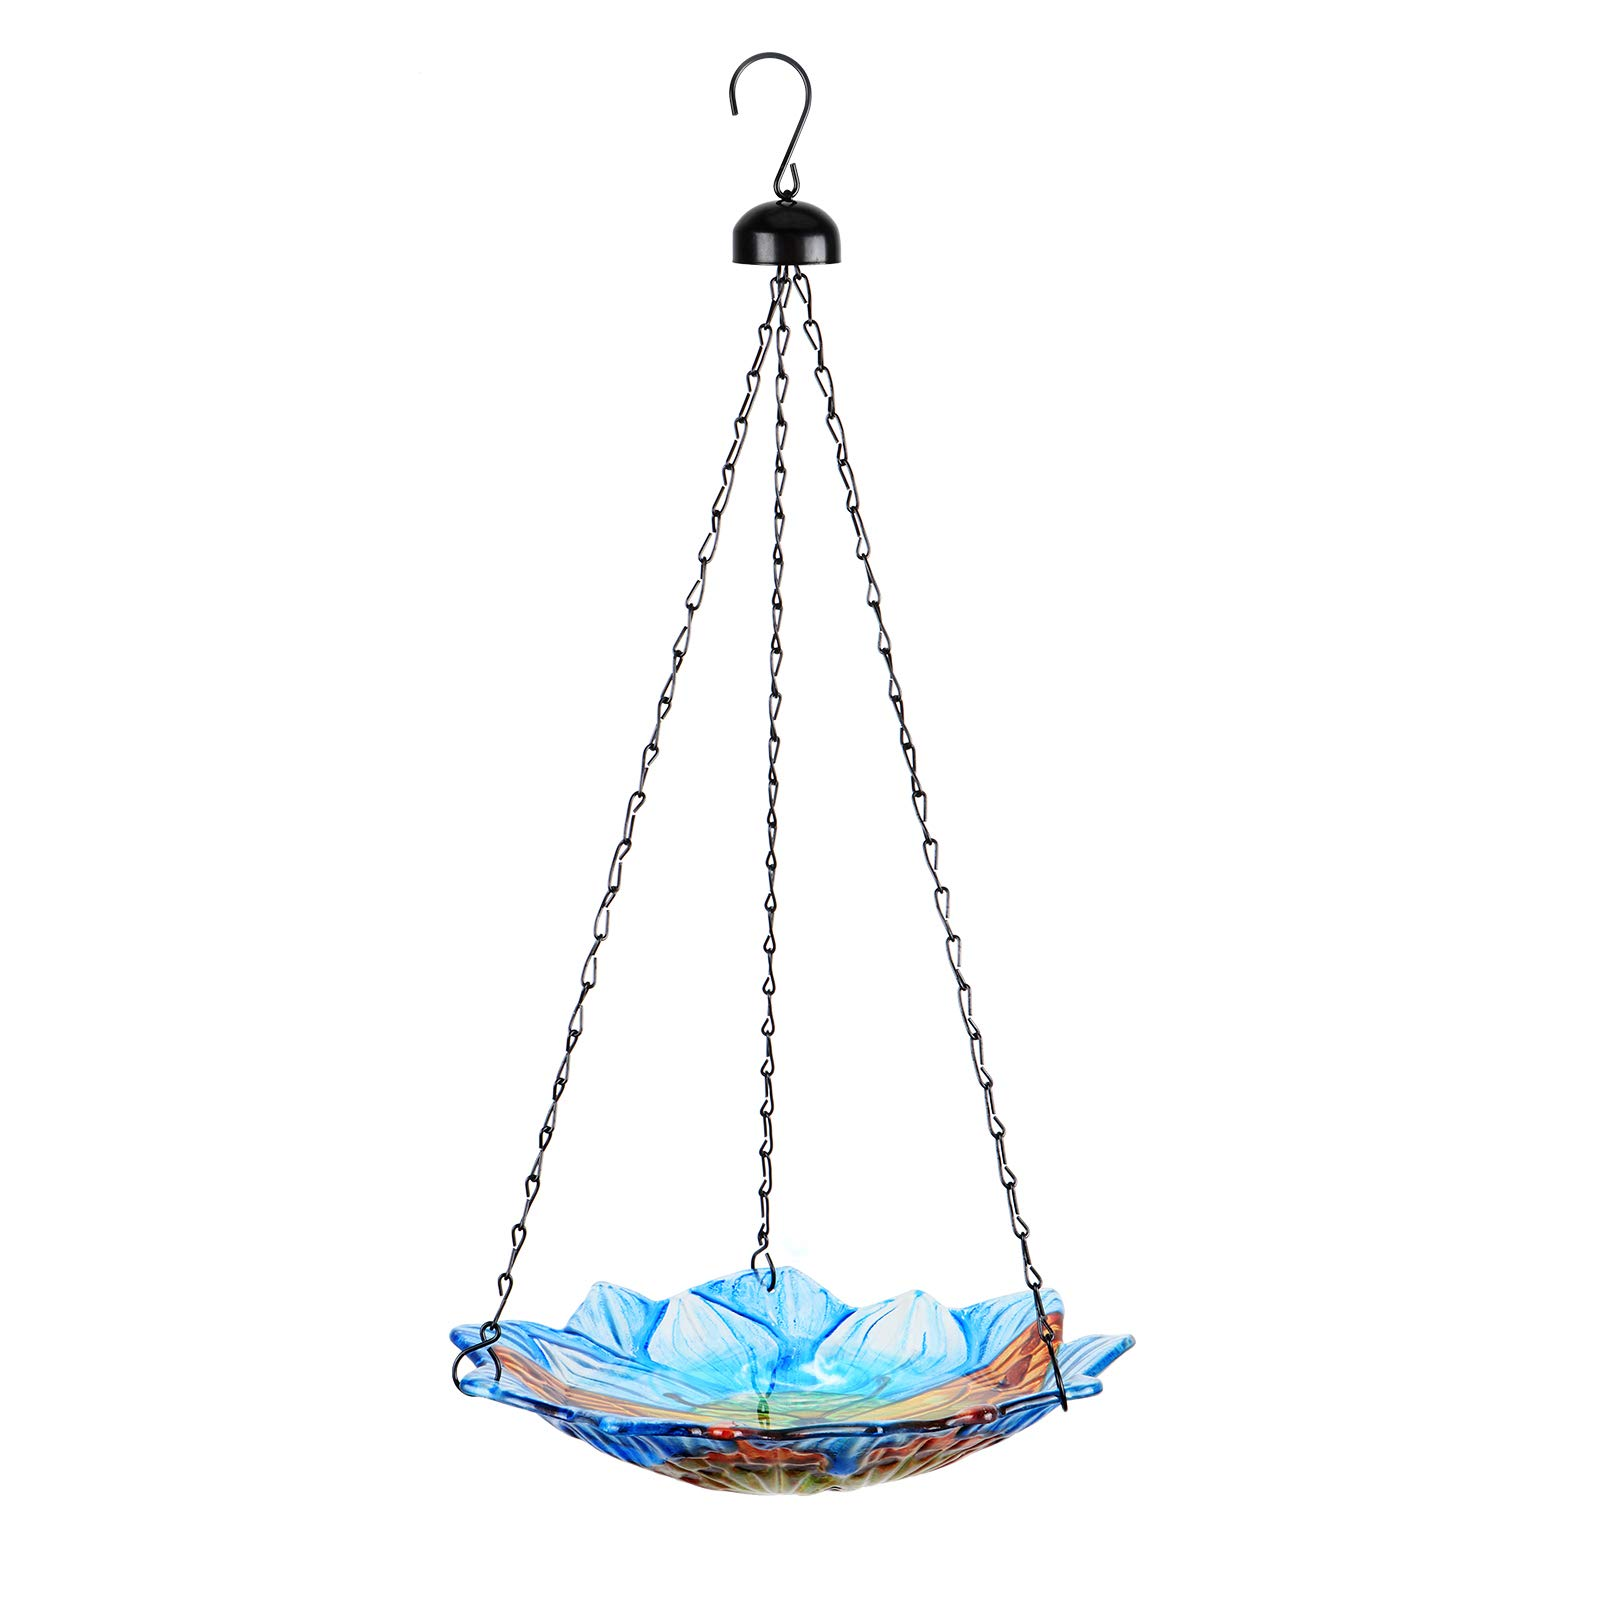 DREAM GARDEN Hanging Bird Bath - 11-Inch Glass Birdbath Butterfly Birdfeeders for Outdoor Garden Yard Decoration Blue